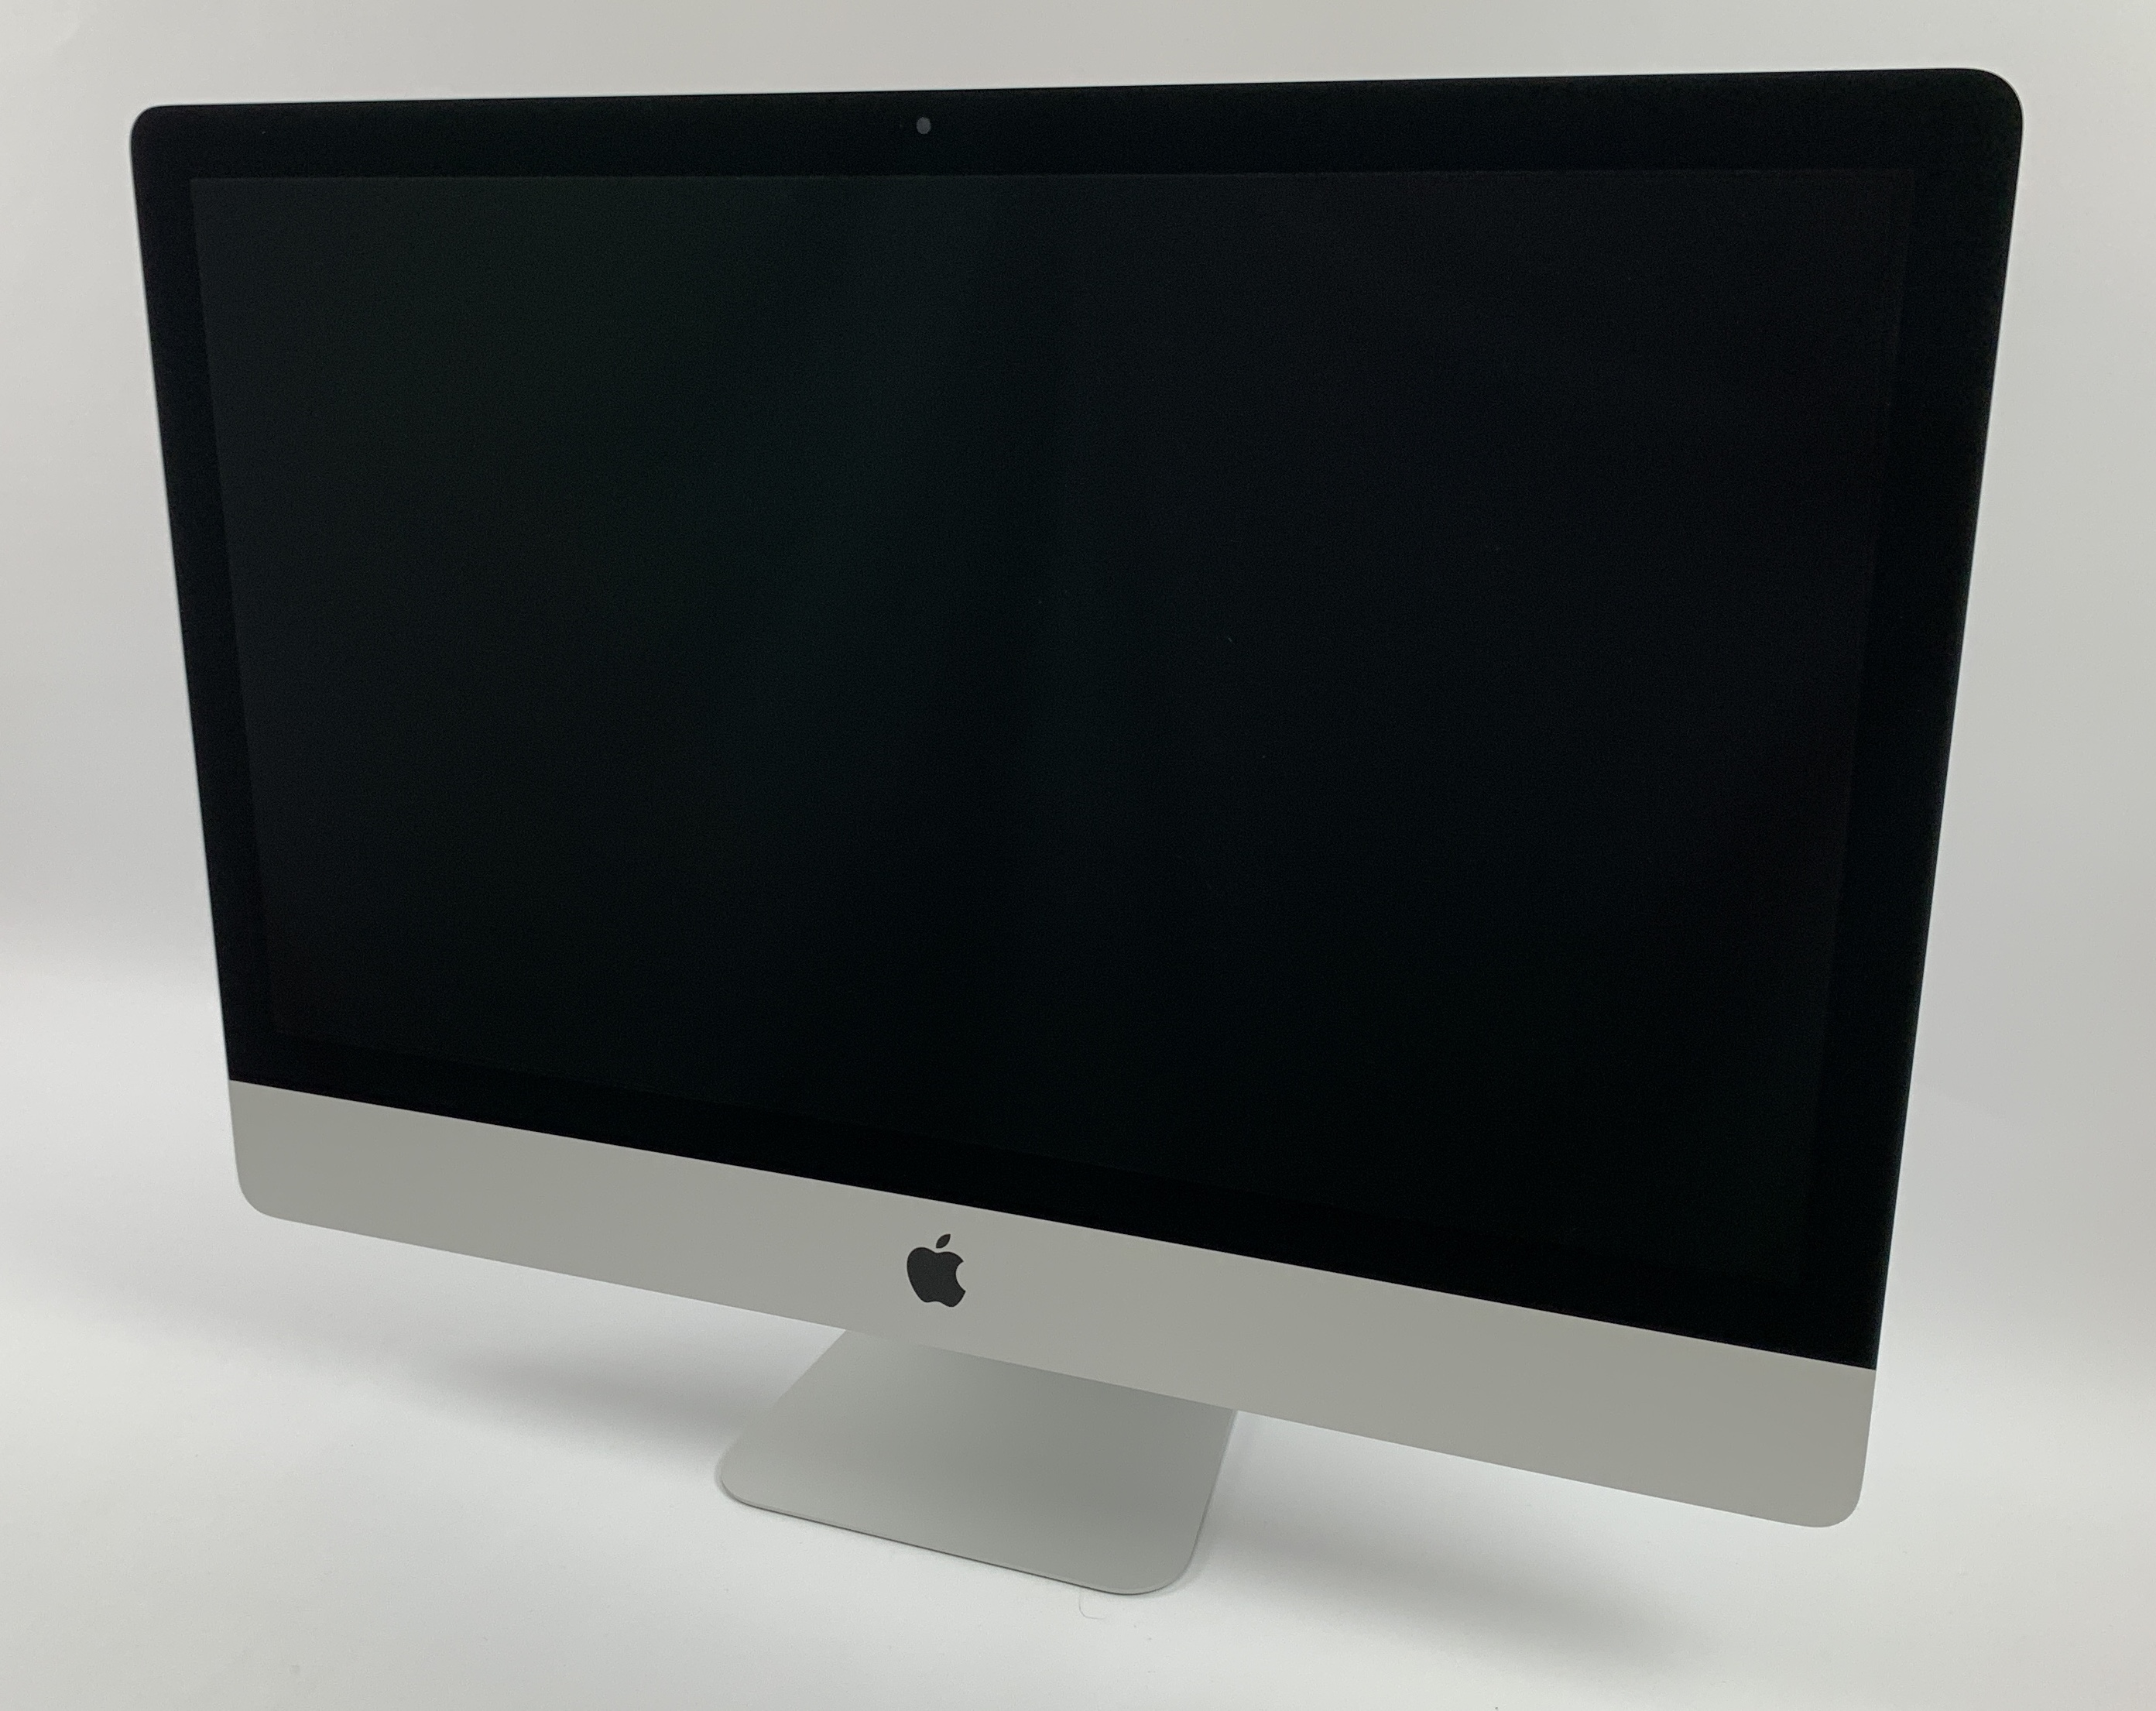 "iMac 21.5"" Retina 4K Early 2019 (Intel Quad-Core i3 3.6 GHz 32 GB RAM 1 TB SSD), Intel Quad-Core i3 3.6 GHz, 32 GB RAM, 2TB SSD (Third-Party), Kuva 1"